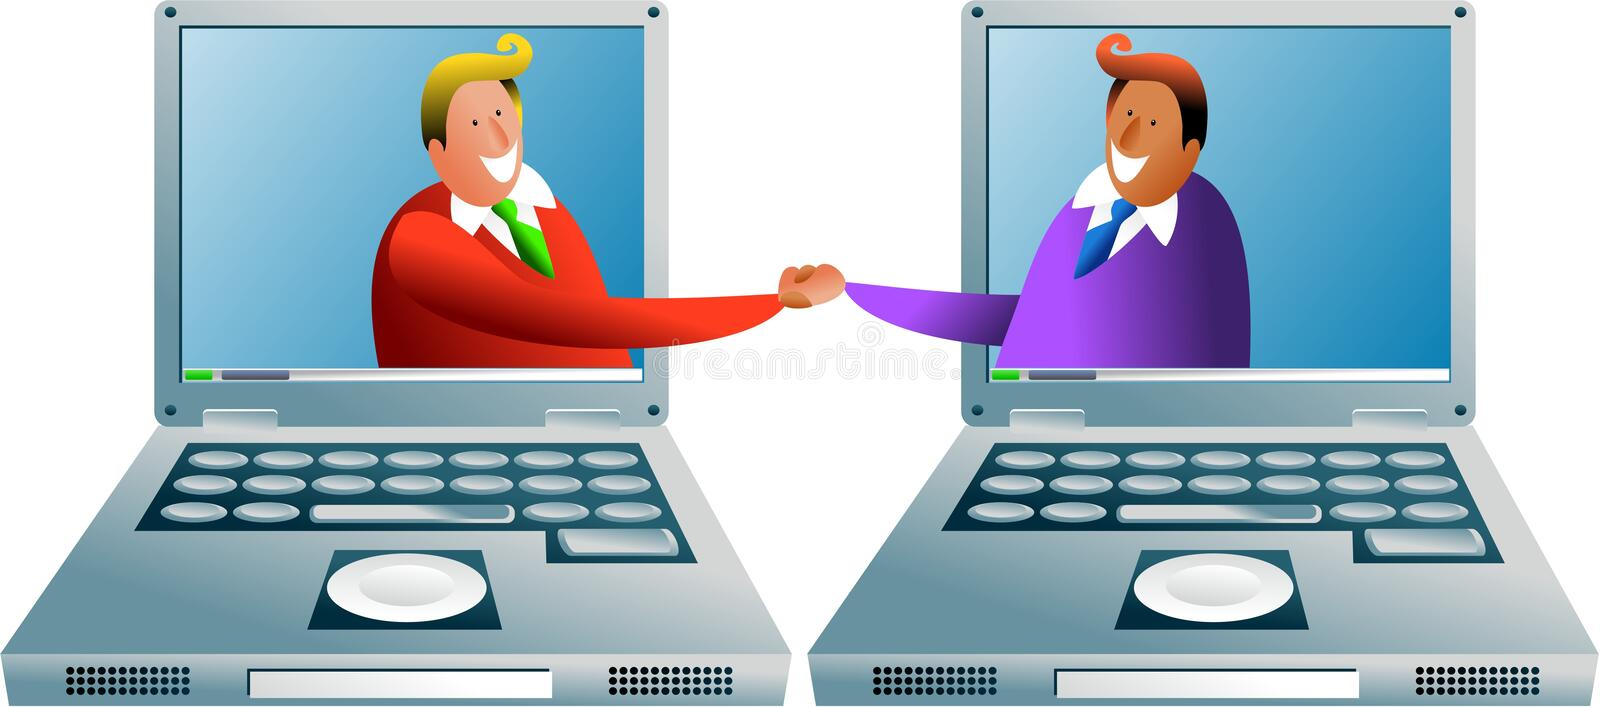 Computer Deal Royalty Free Stock Photo